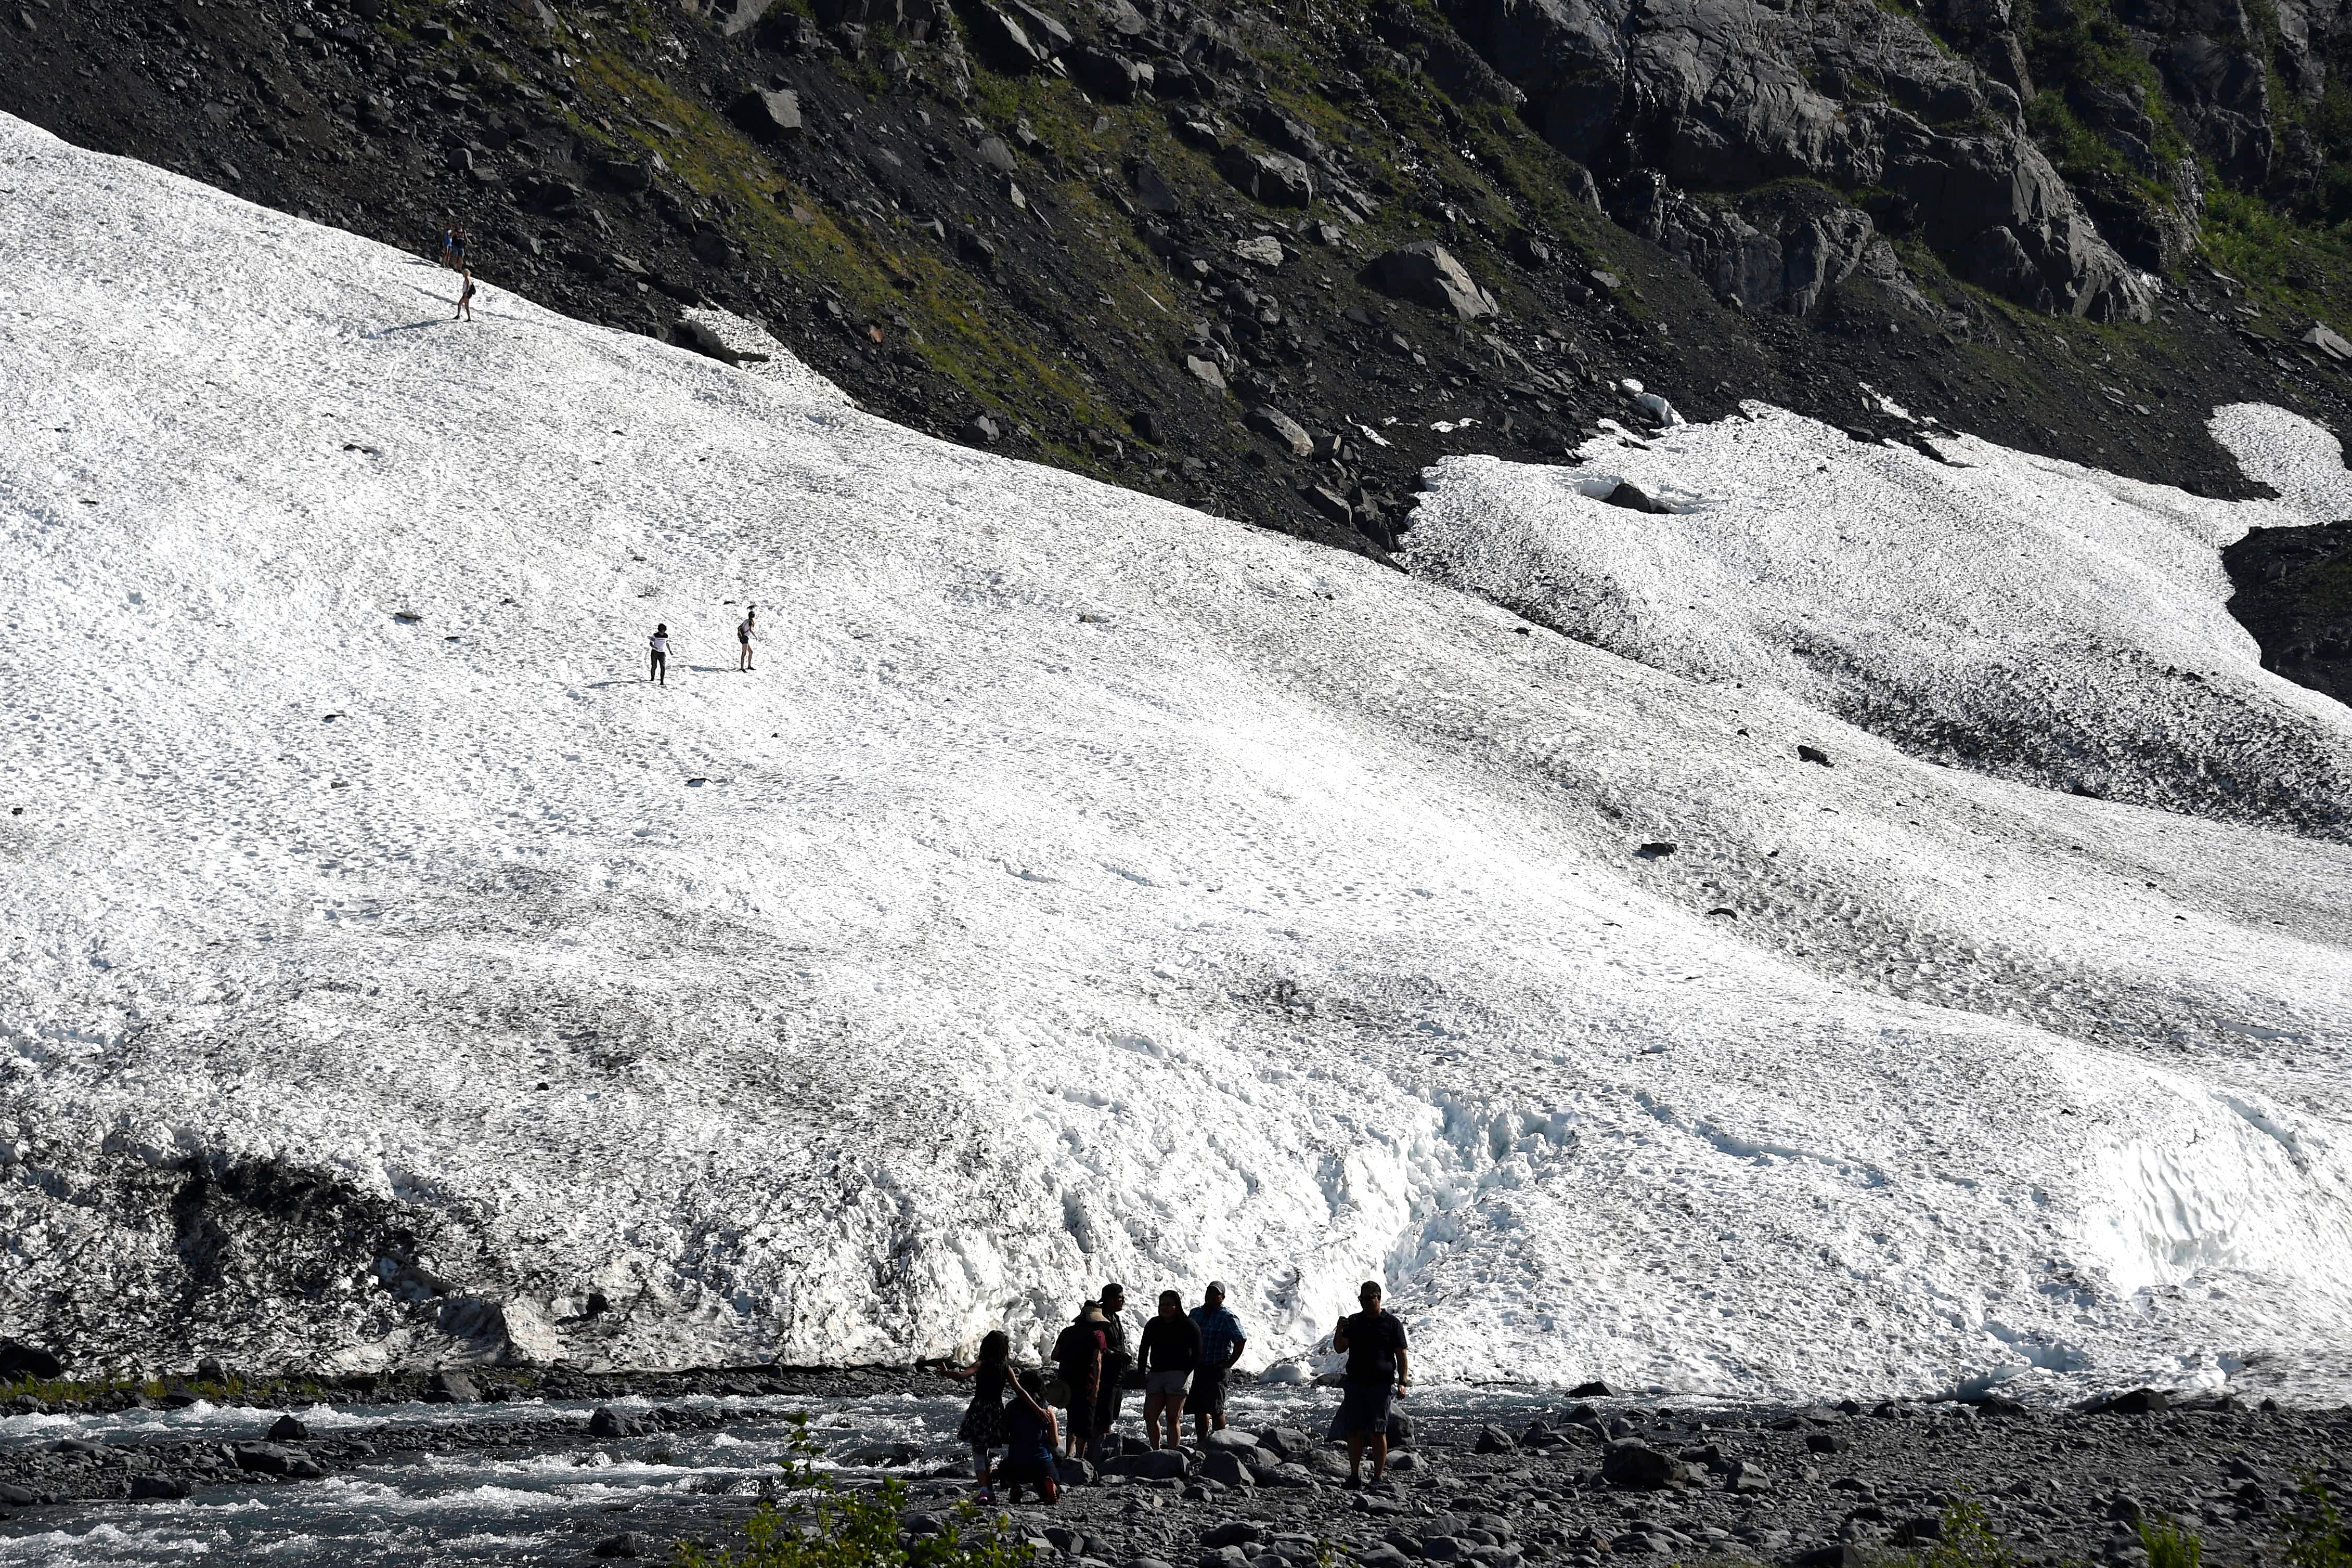 Scientists say climate change is pushing Alaska's weather